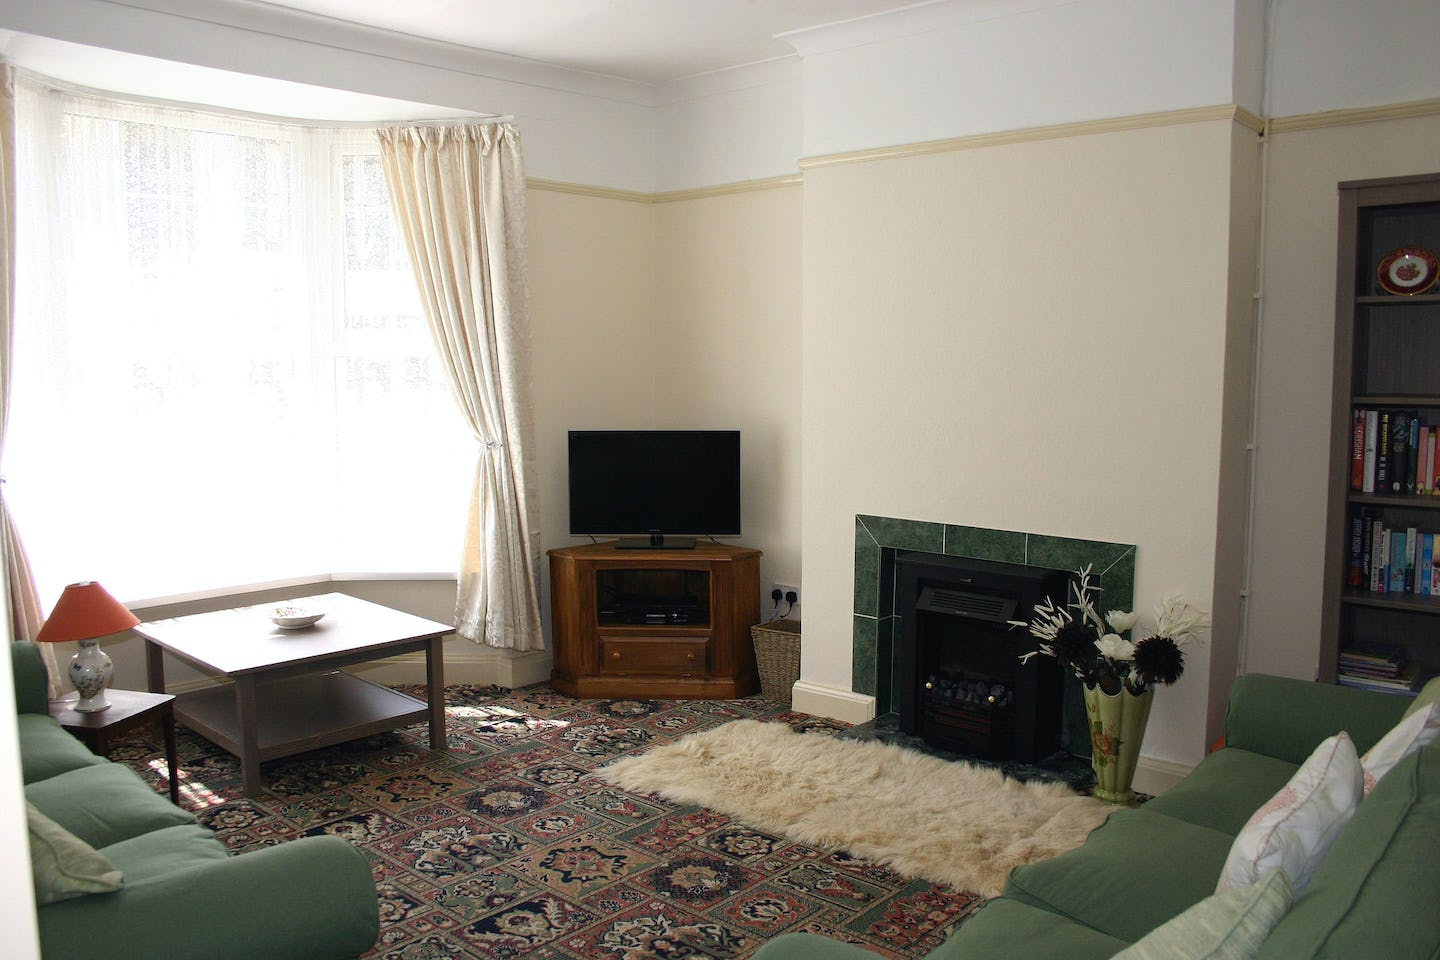 Mabel 39 s haven large holiday home in tenby pembrokeshire for Living room 507